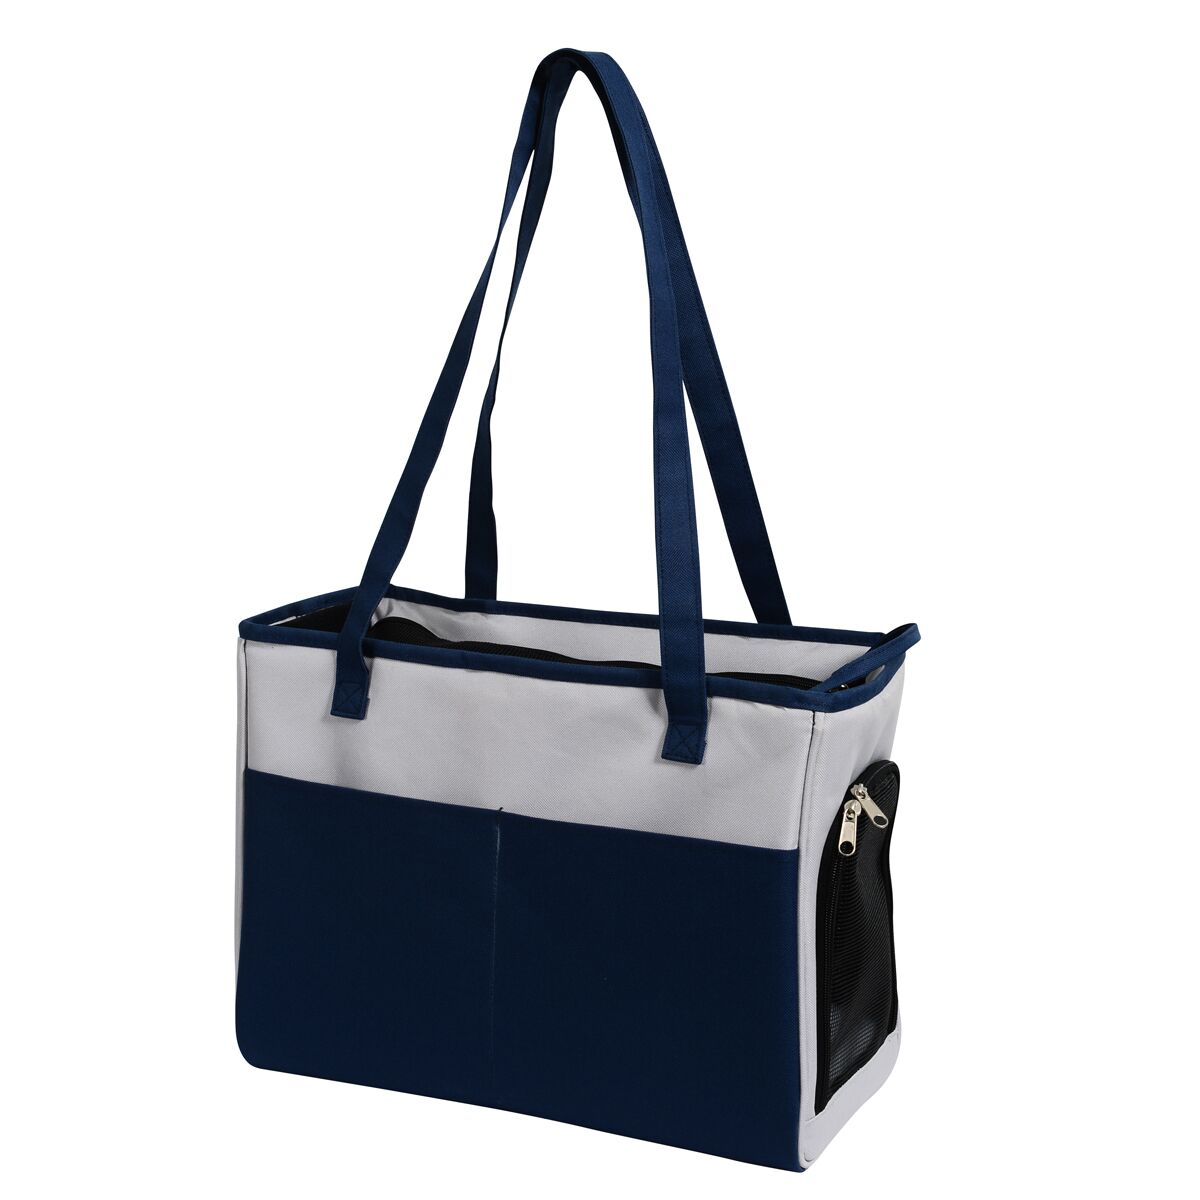 FurryGo Pet Carrier Color: NavyBlue/LightGrey